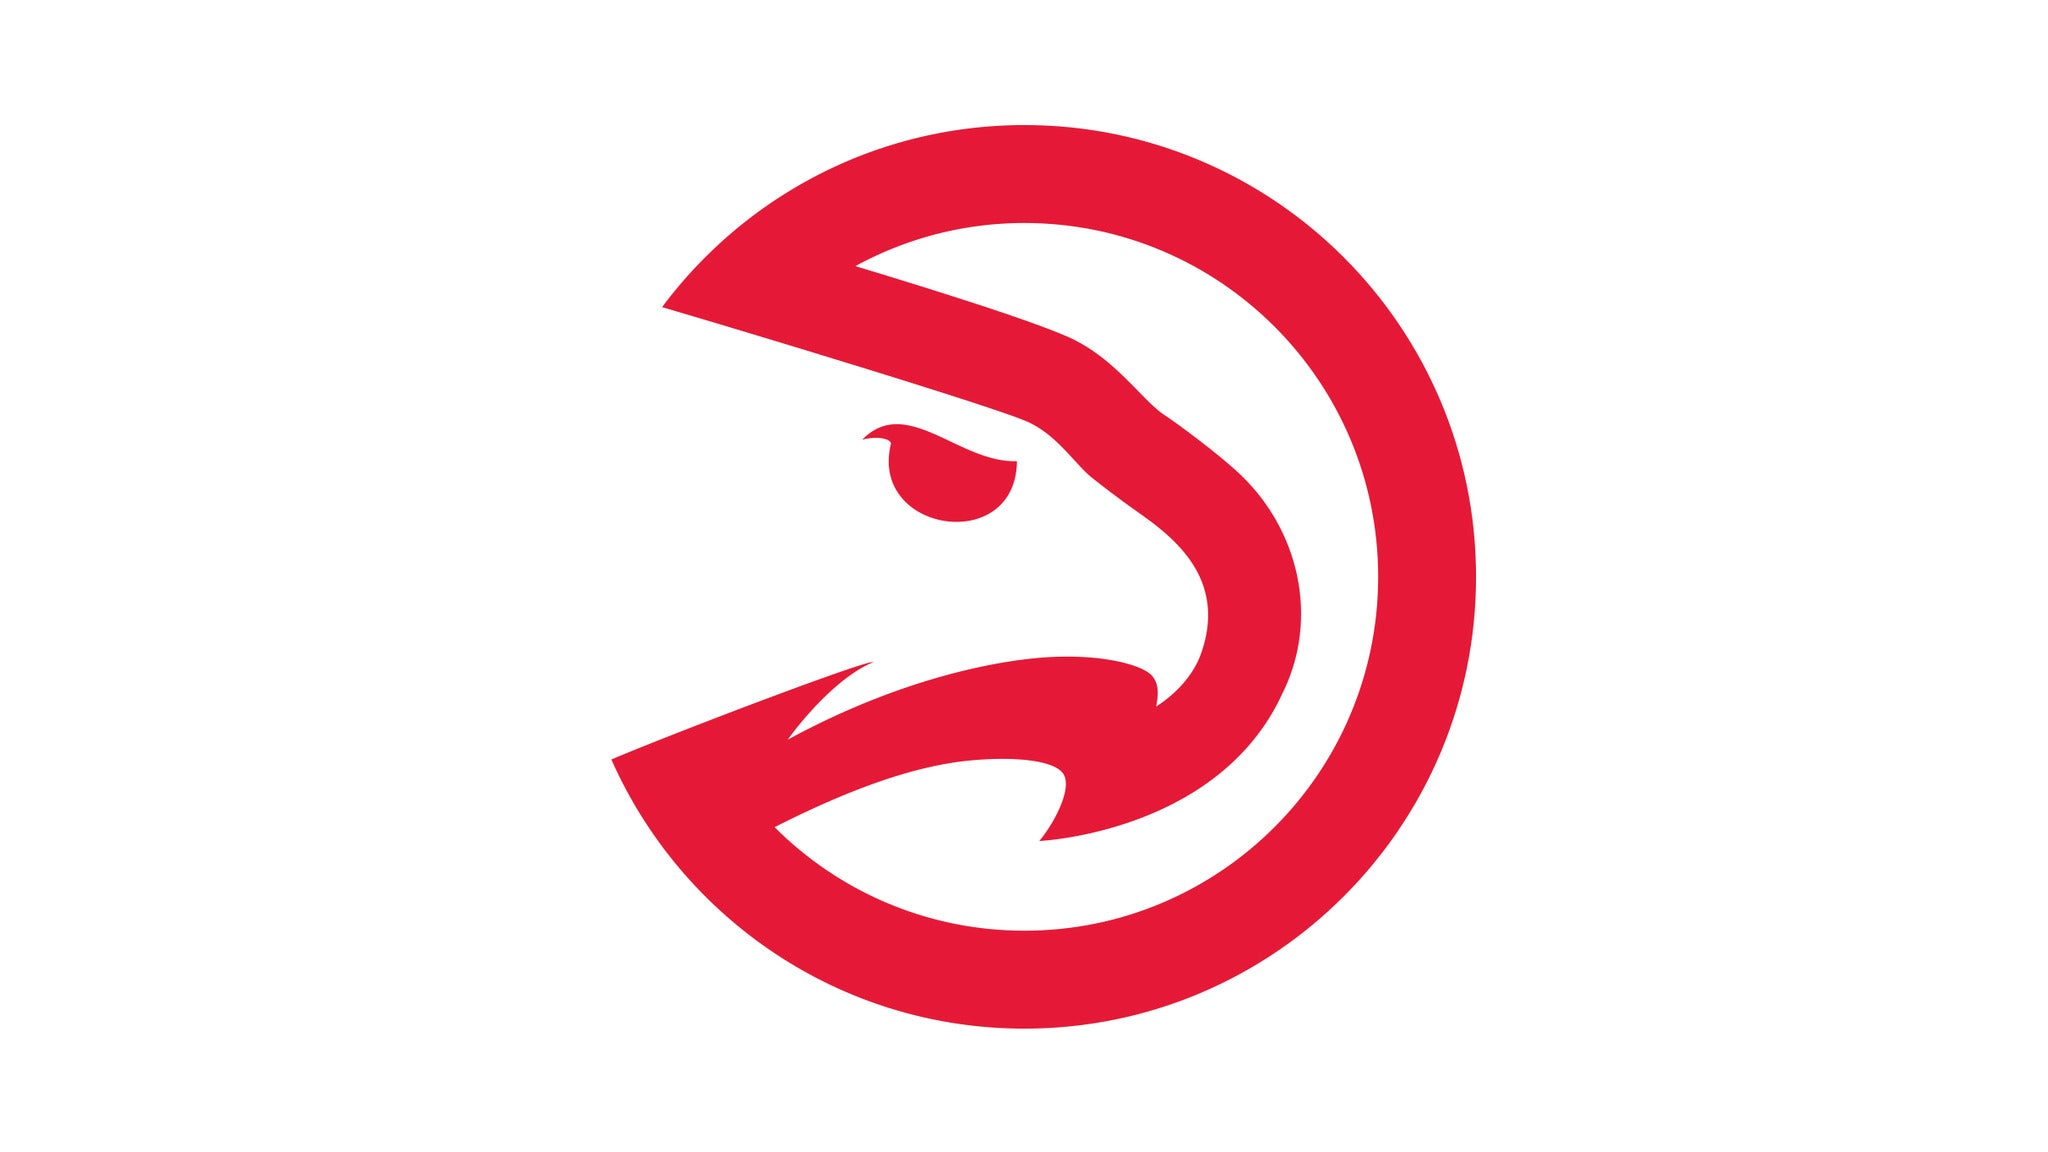 Atlanta Hawks vs. New York Knicks at Philips Arena